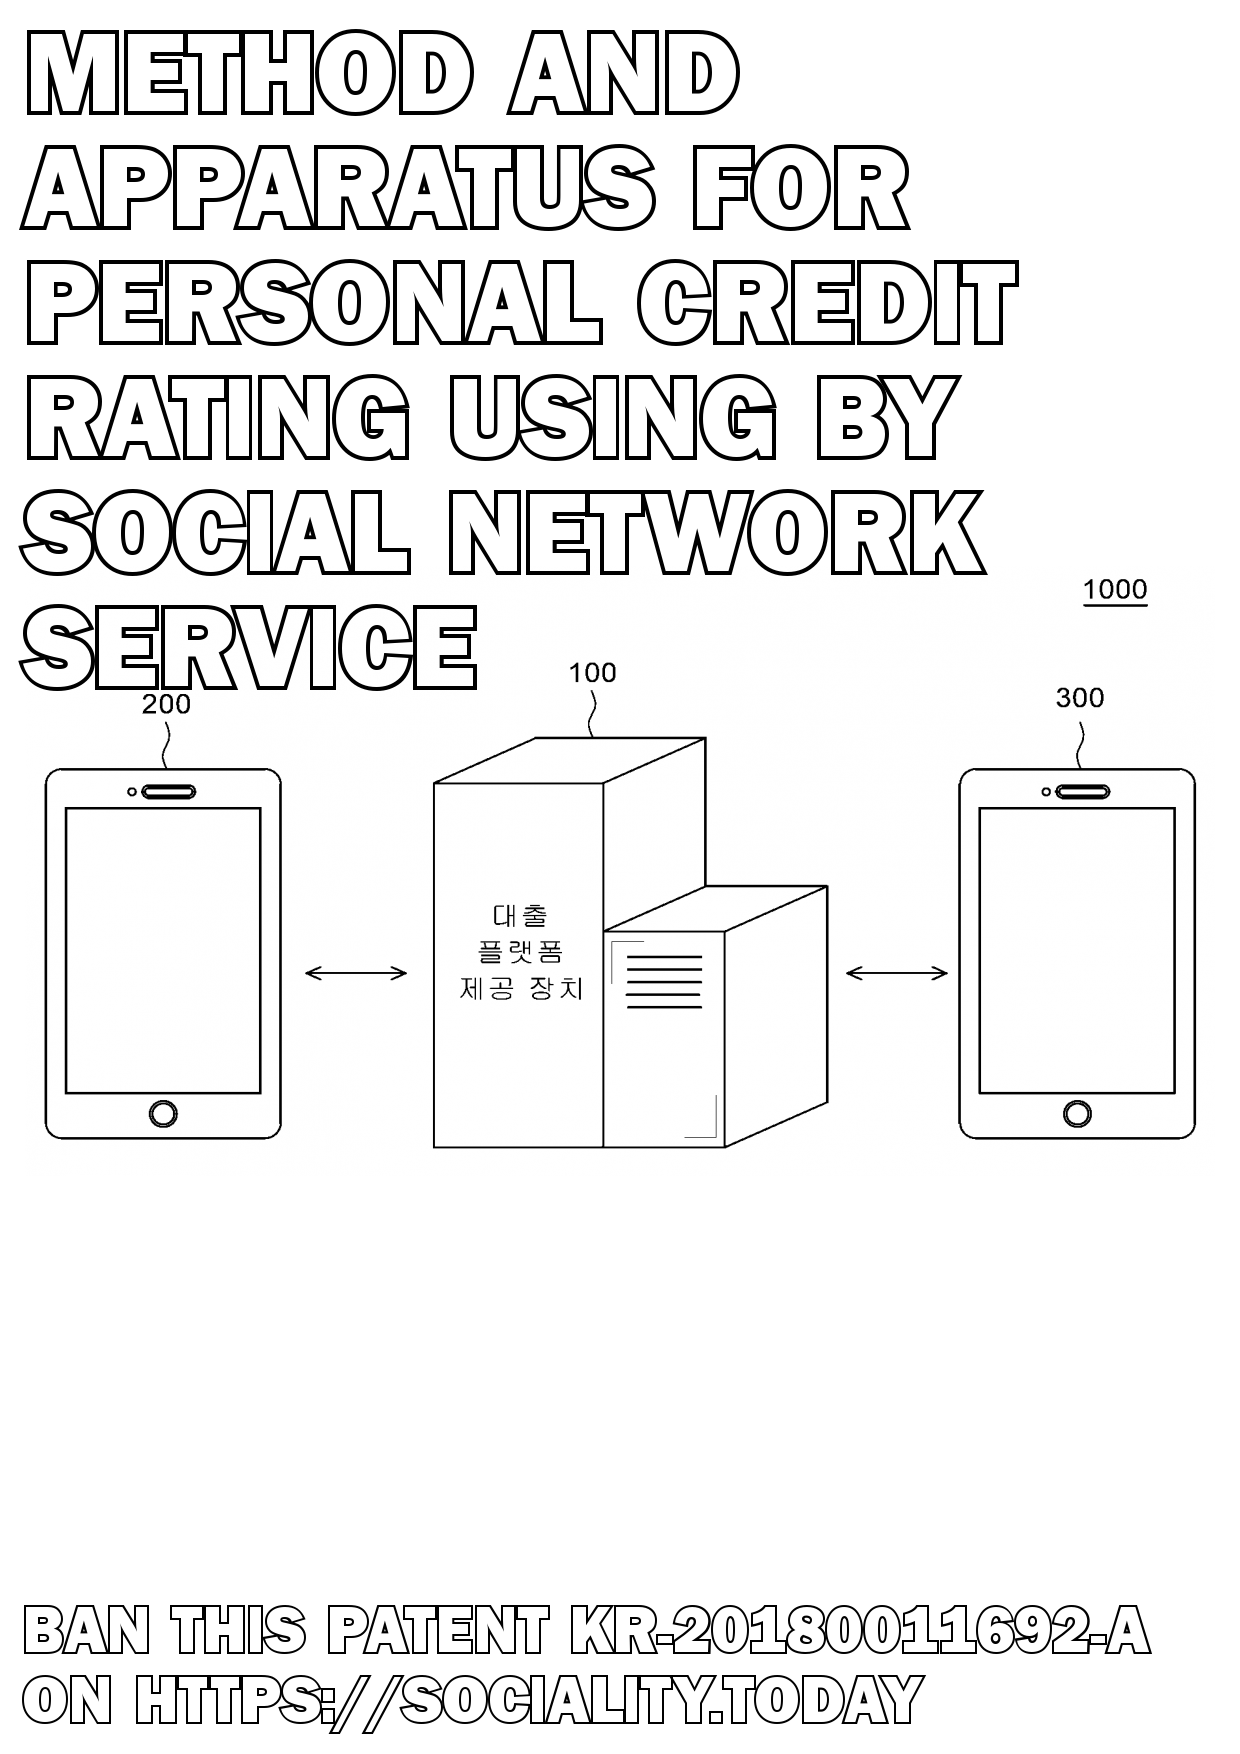 Method and apparatus for personal credit rating using by social network service  - KR-20180011692-A